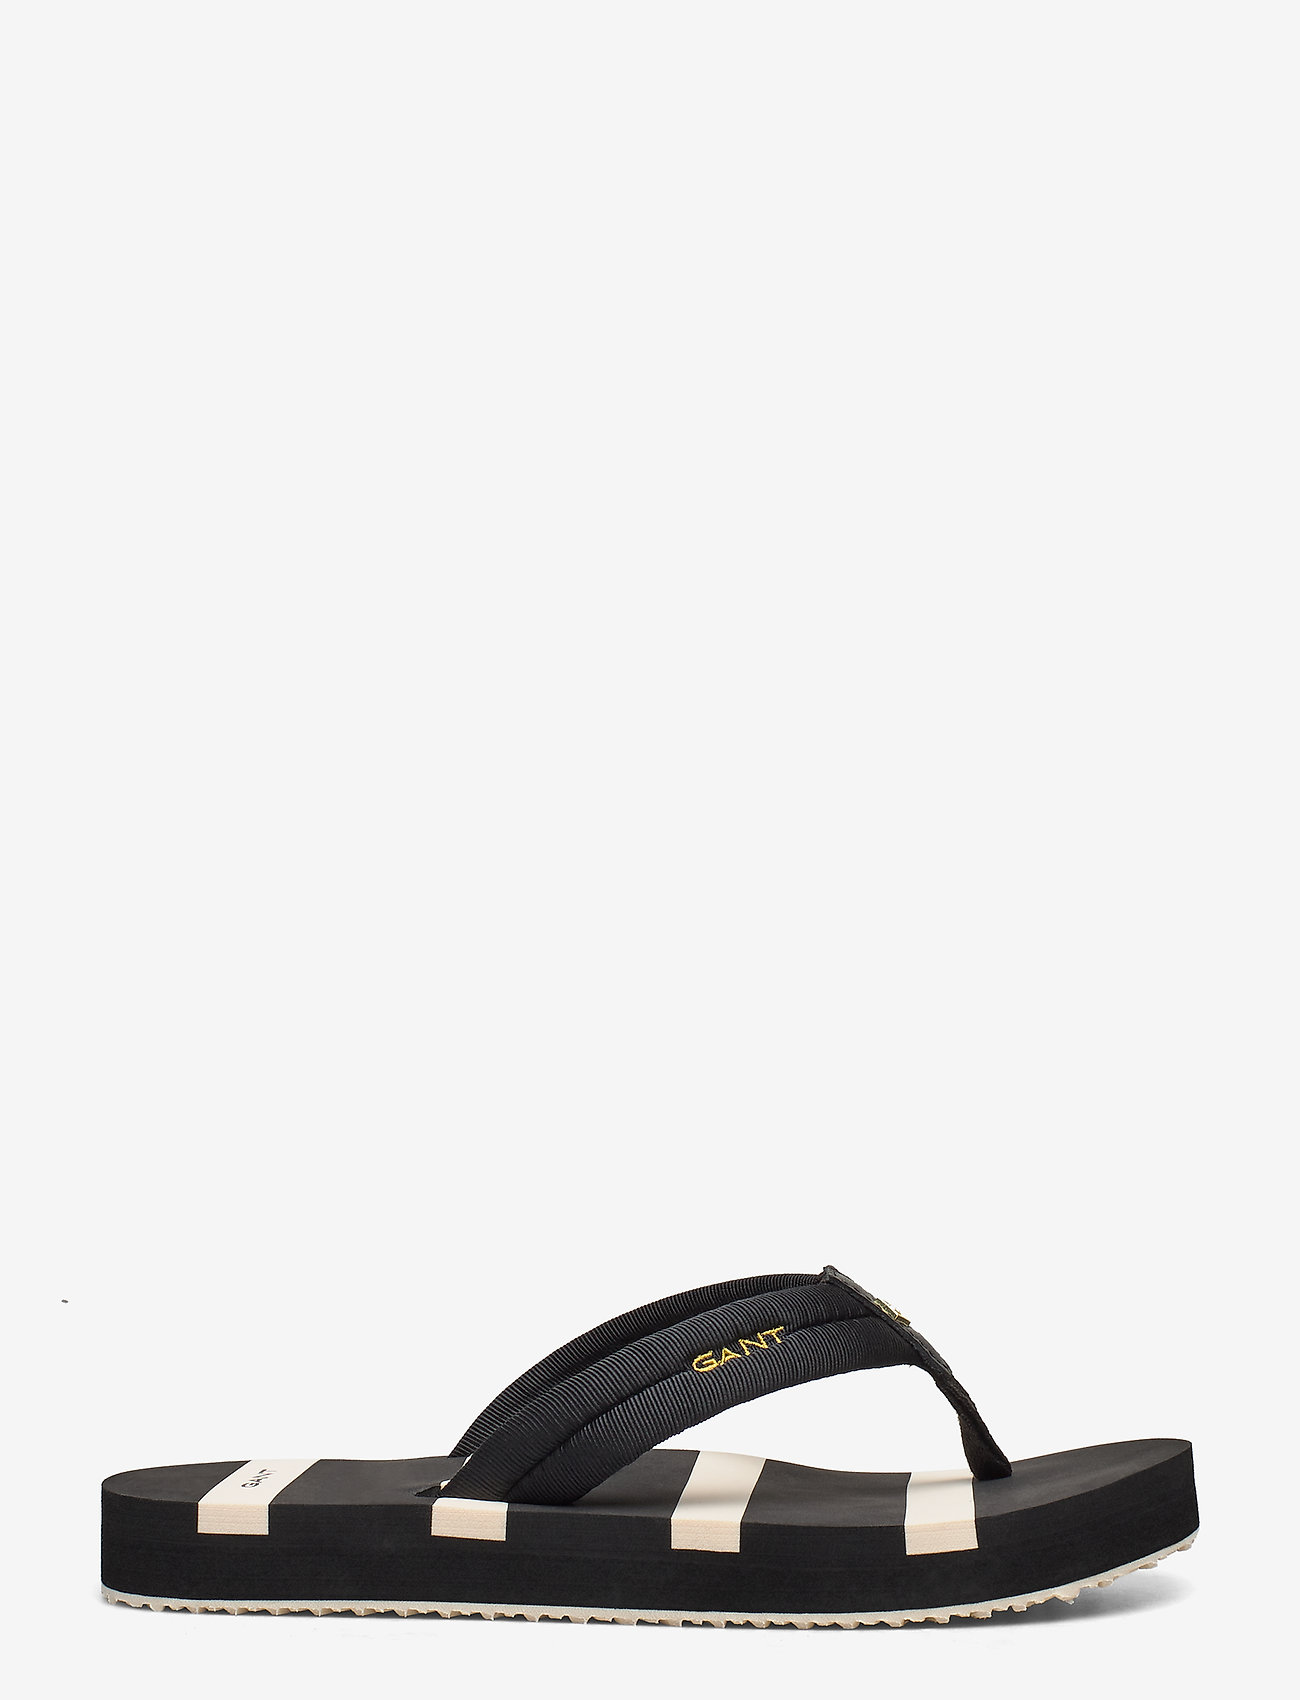 Lemonbeach Flip-flop (Black) - GANT dbgkuZ